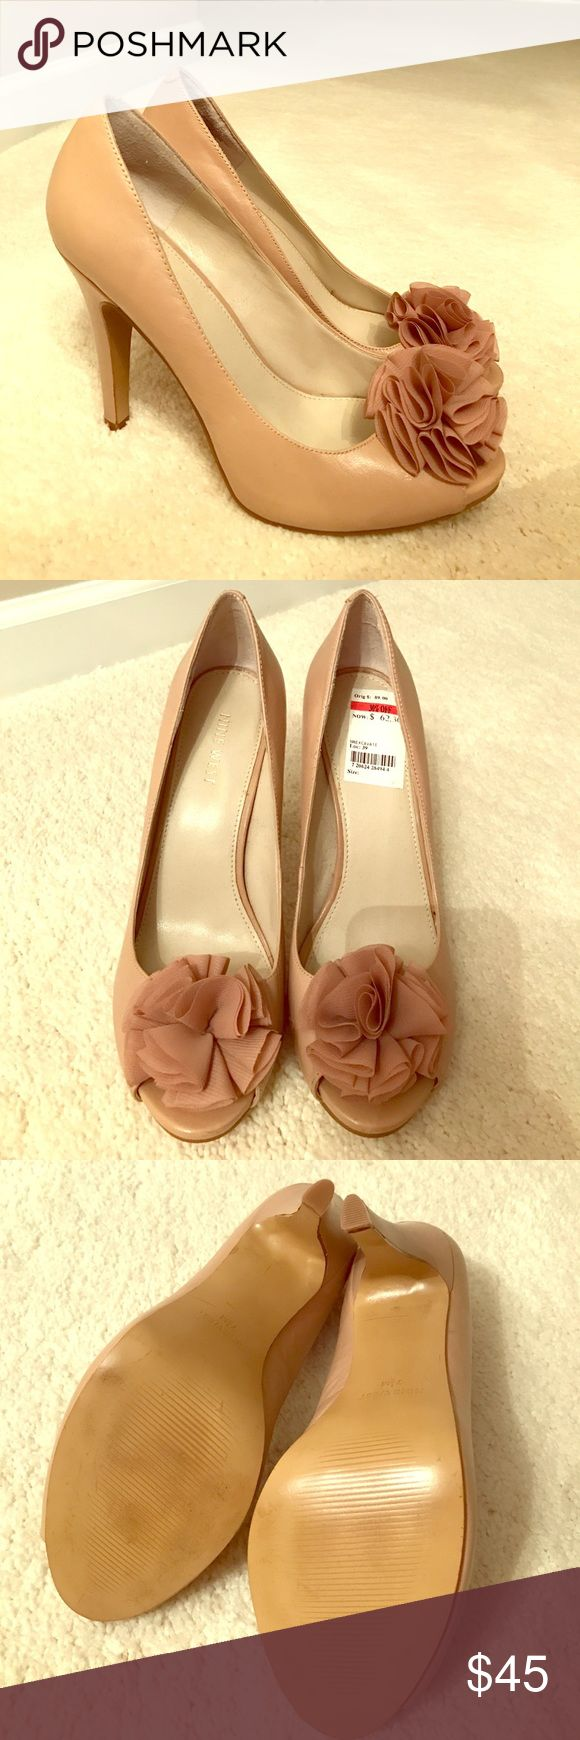 Nine West: Nude Peep Toe Pumps Never been worn.  Beautiful new peep toe pumps. Great for dressing up any outfit! Nine West Shoes Heels